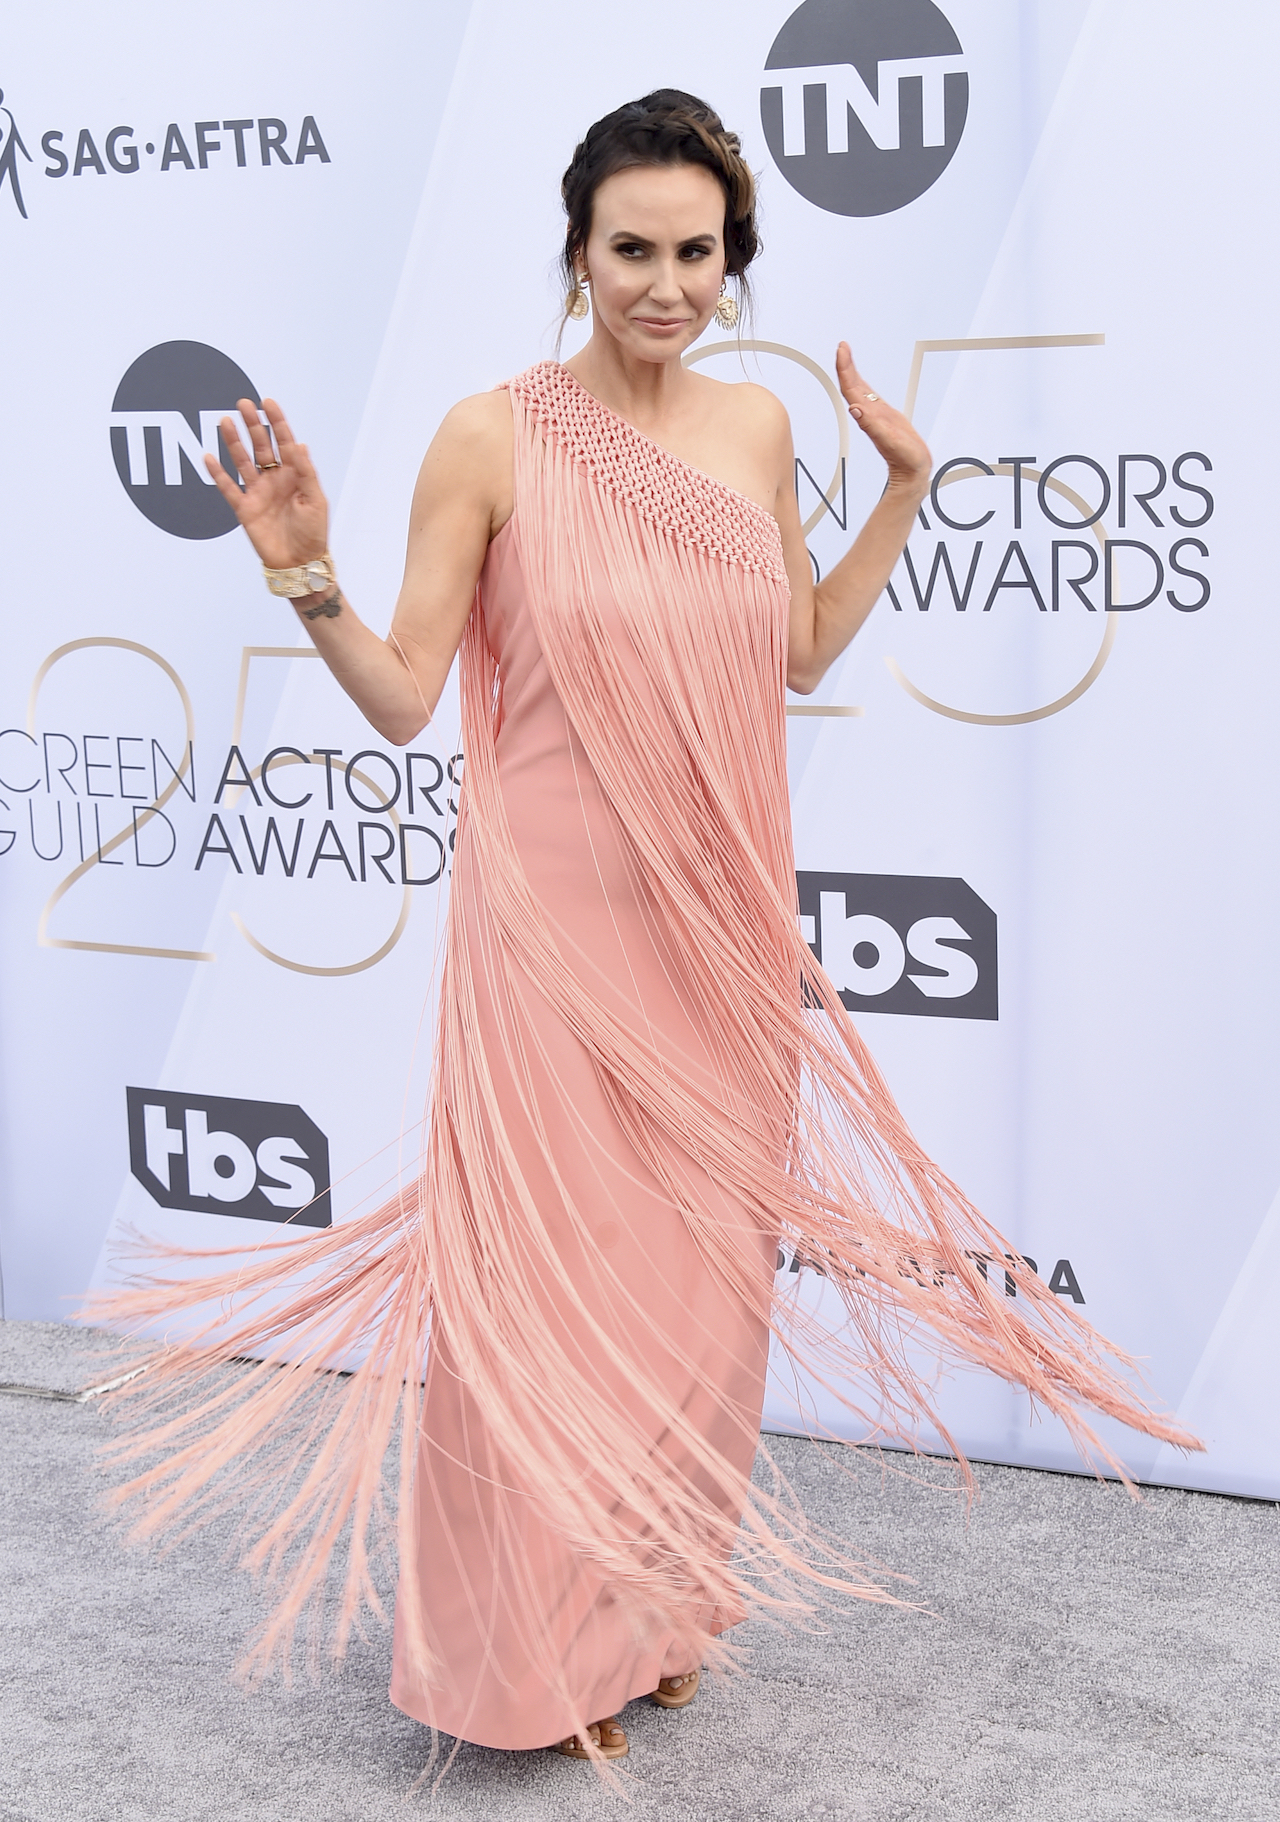 <div class='meta'><div class='origin-logo' data-origin='AP'></div><span class='caption-text' data-credit='Jordan Strauss/Invision/AP'>Keltie Knight arrives at the 25th annual Screen Actors Guild Awards at the Shrine Auditorium & Expo Hall on Sunday, Jan. 27, 2019, in Los Angeles.</span></div>